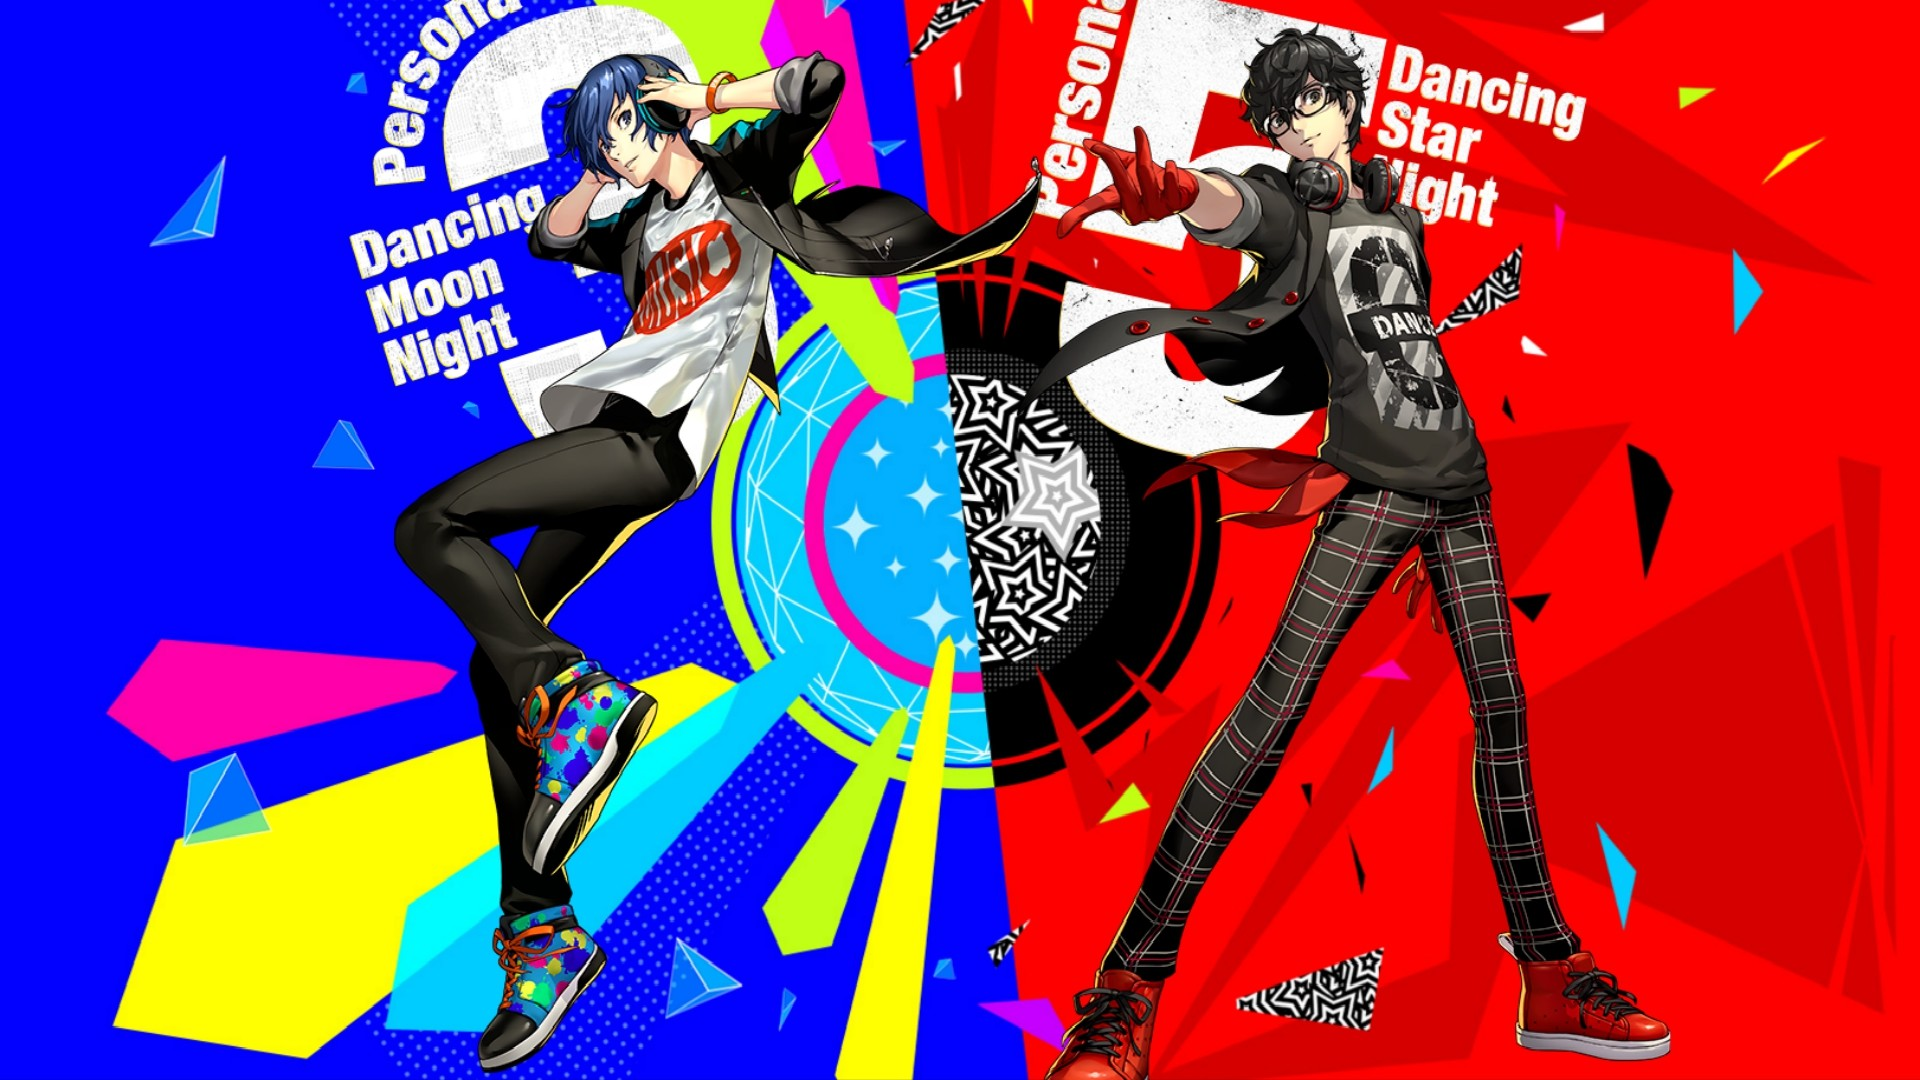 Persona 3 and 5 Dancing Spin-Off Games Coming to PS4 and Vita in 2018  (VIDEO)